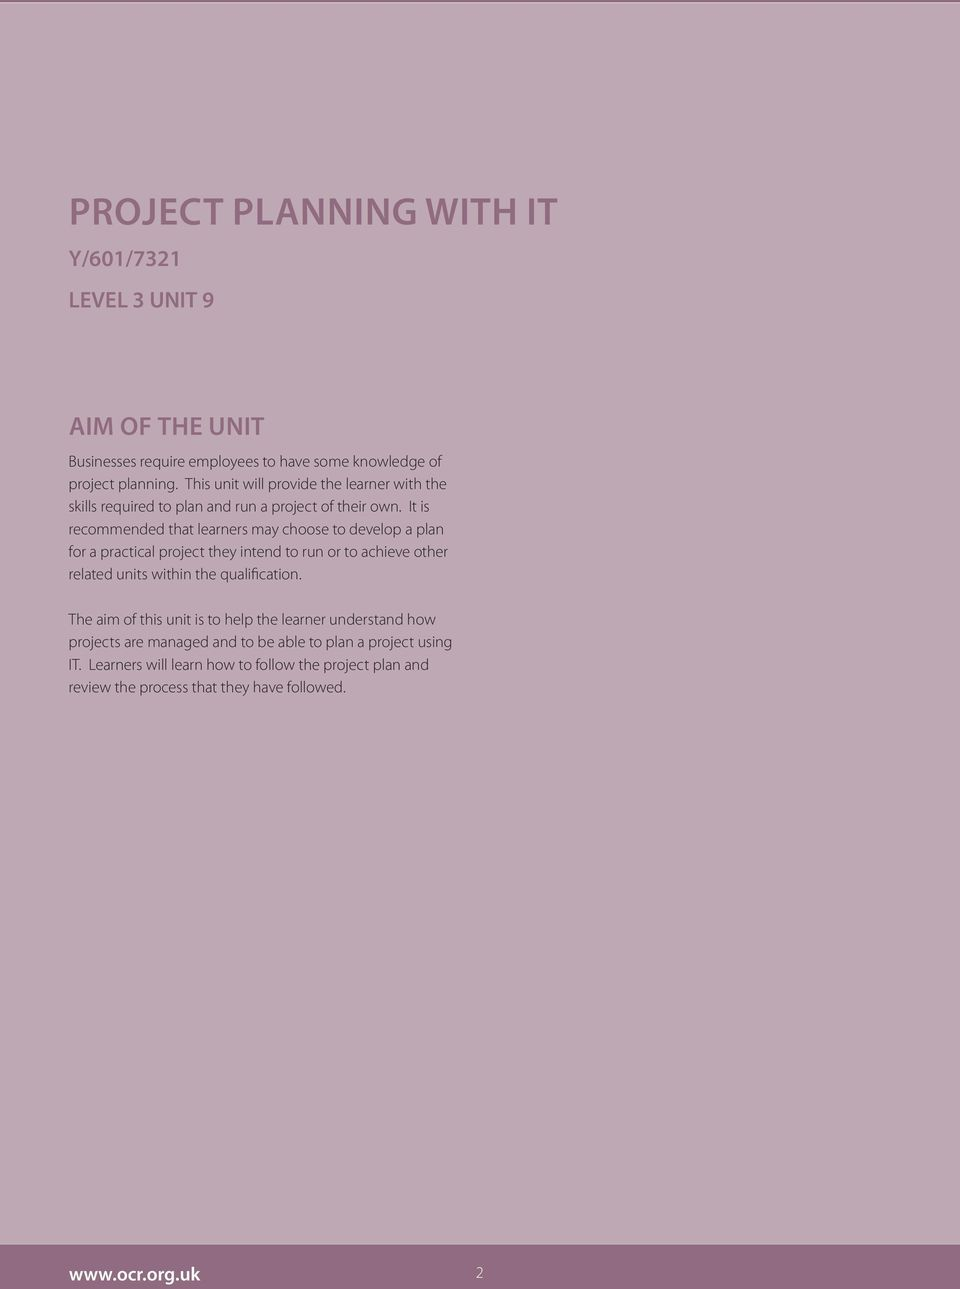 It is recommended that learners may choose to develop a plan for a practical project they intend to run or to achieve other related units within the